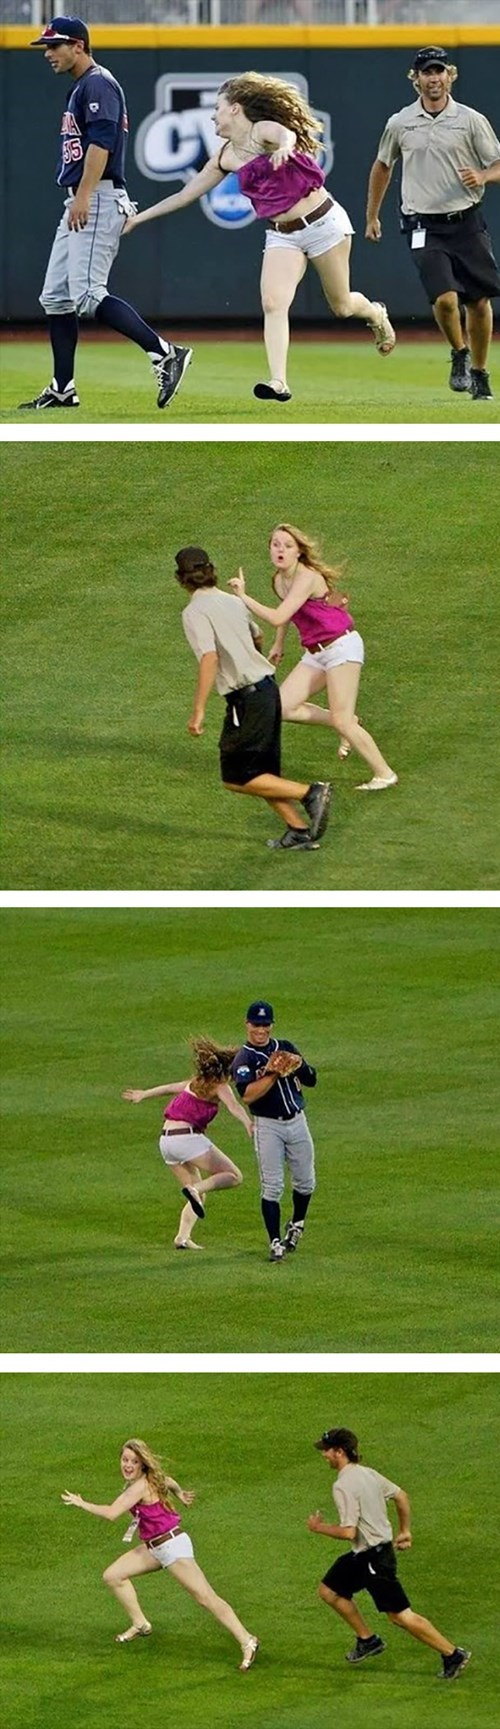 baseball fans streakers she touched the butt